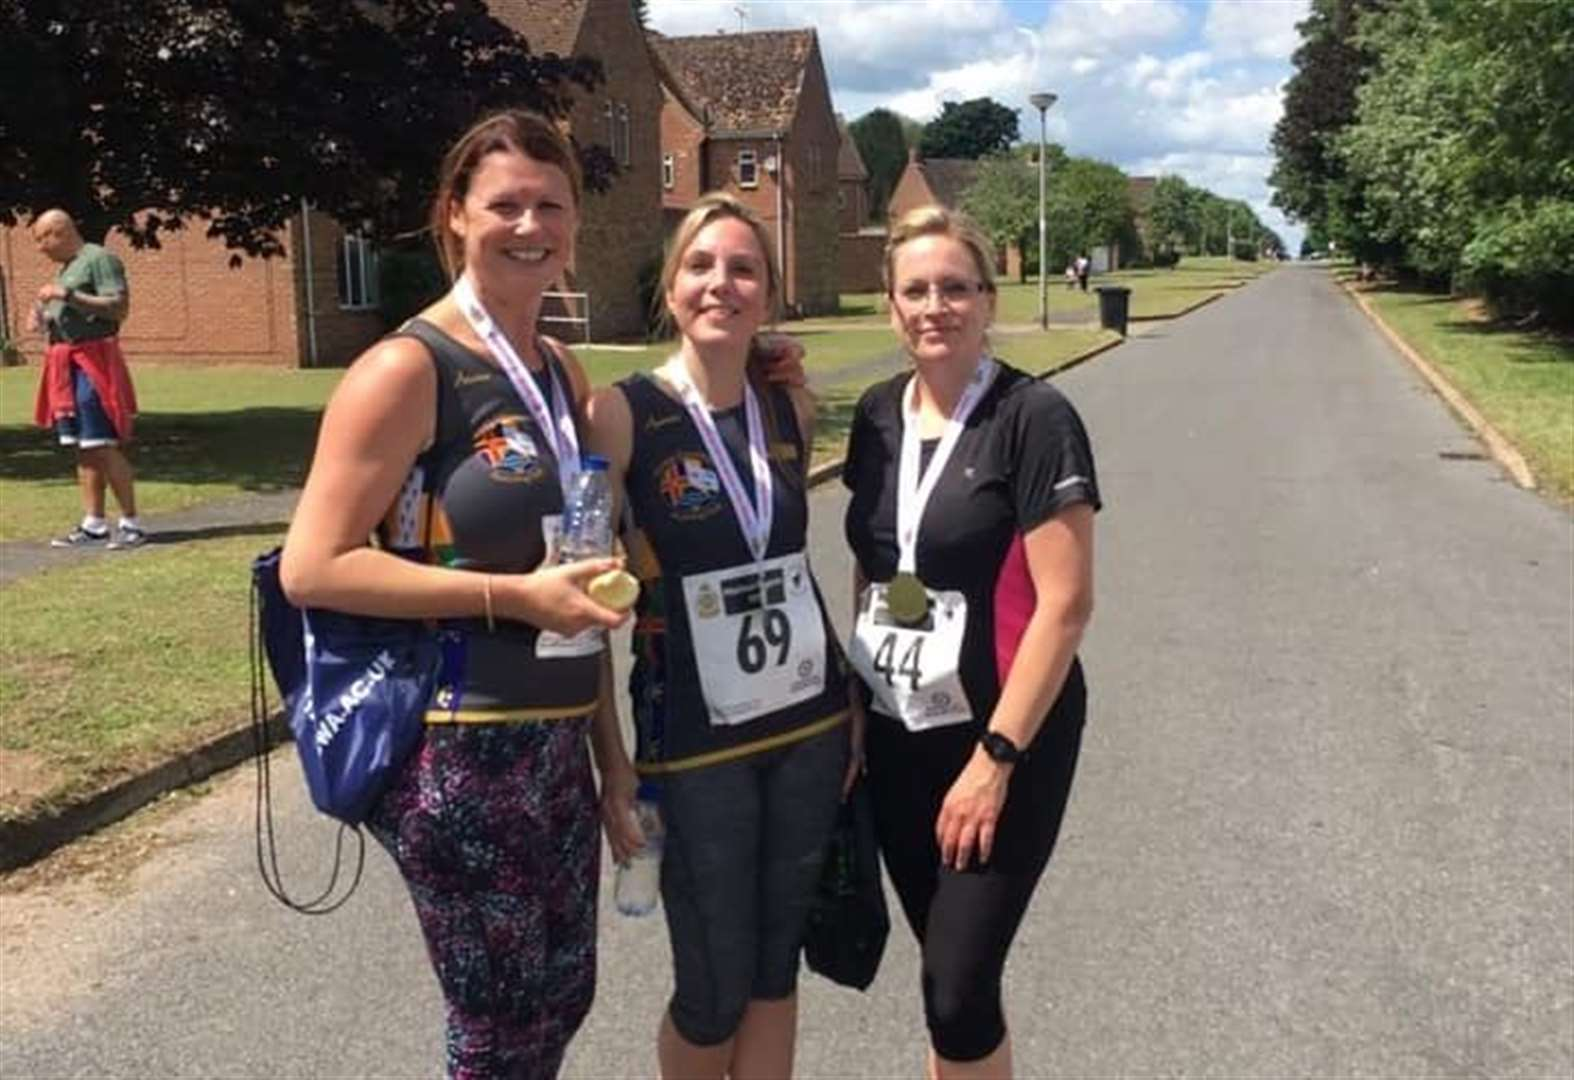 Find out why three's a magic number for Leverington running club